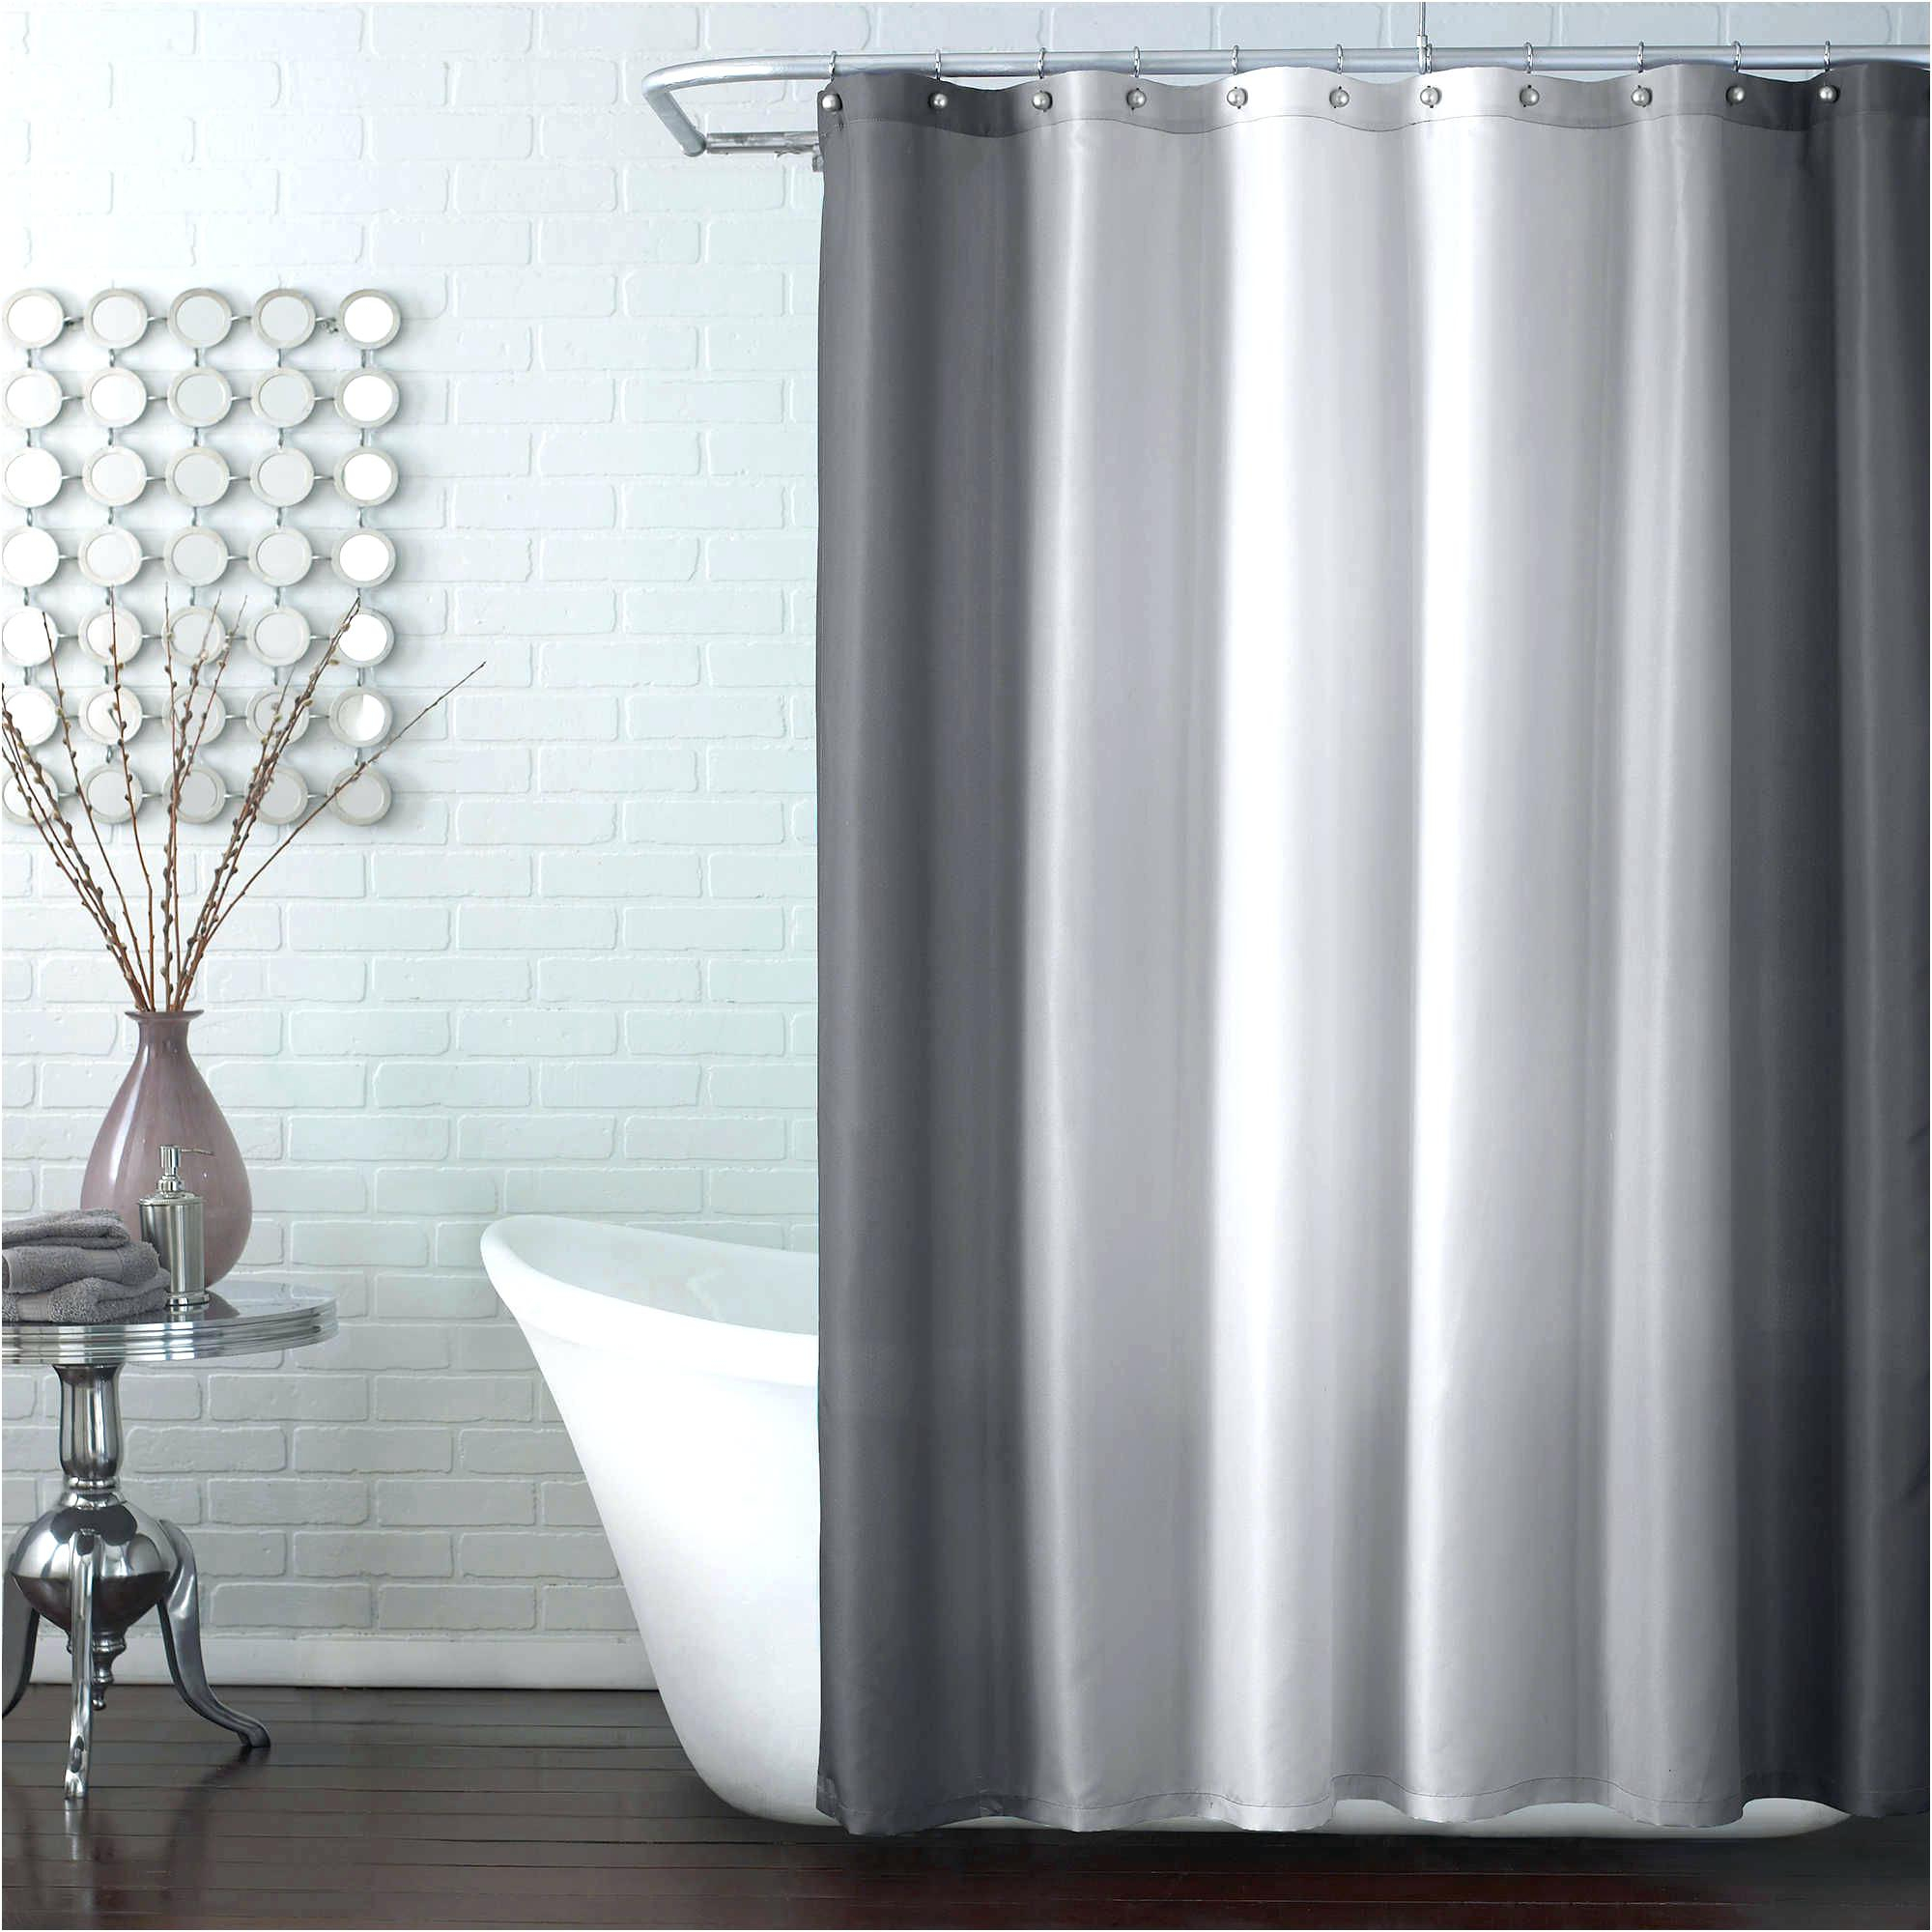 Clear Top Panel Shower Curtain Curtains Ideas